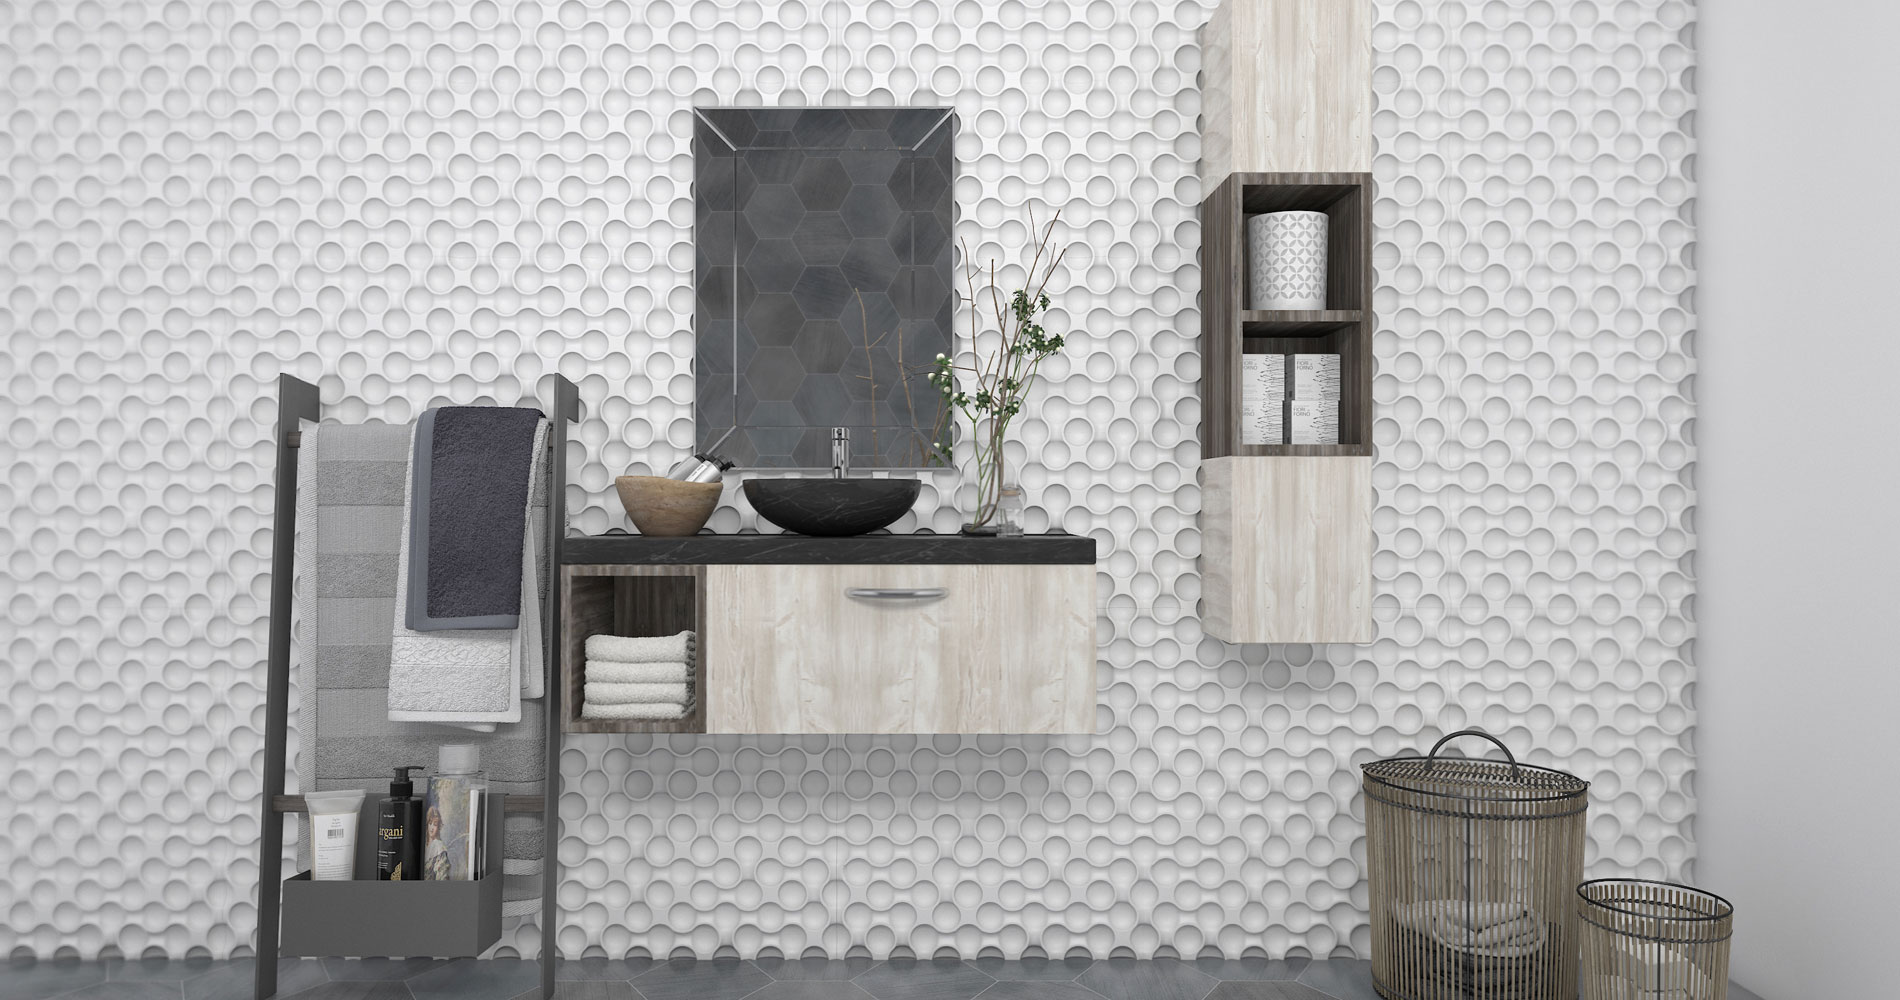 Rugged wall cladding adding new dimensions to the home interiors